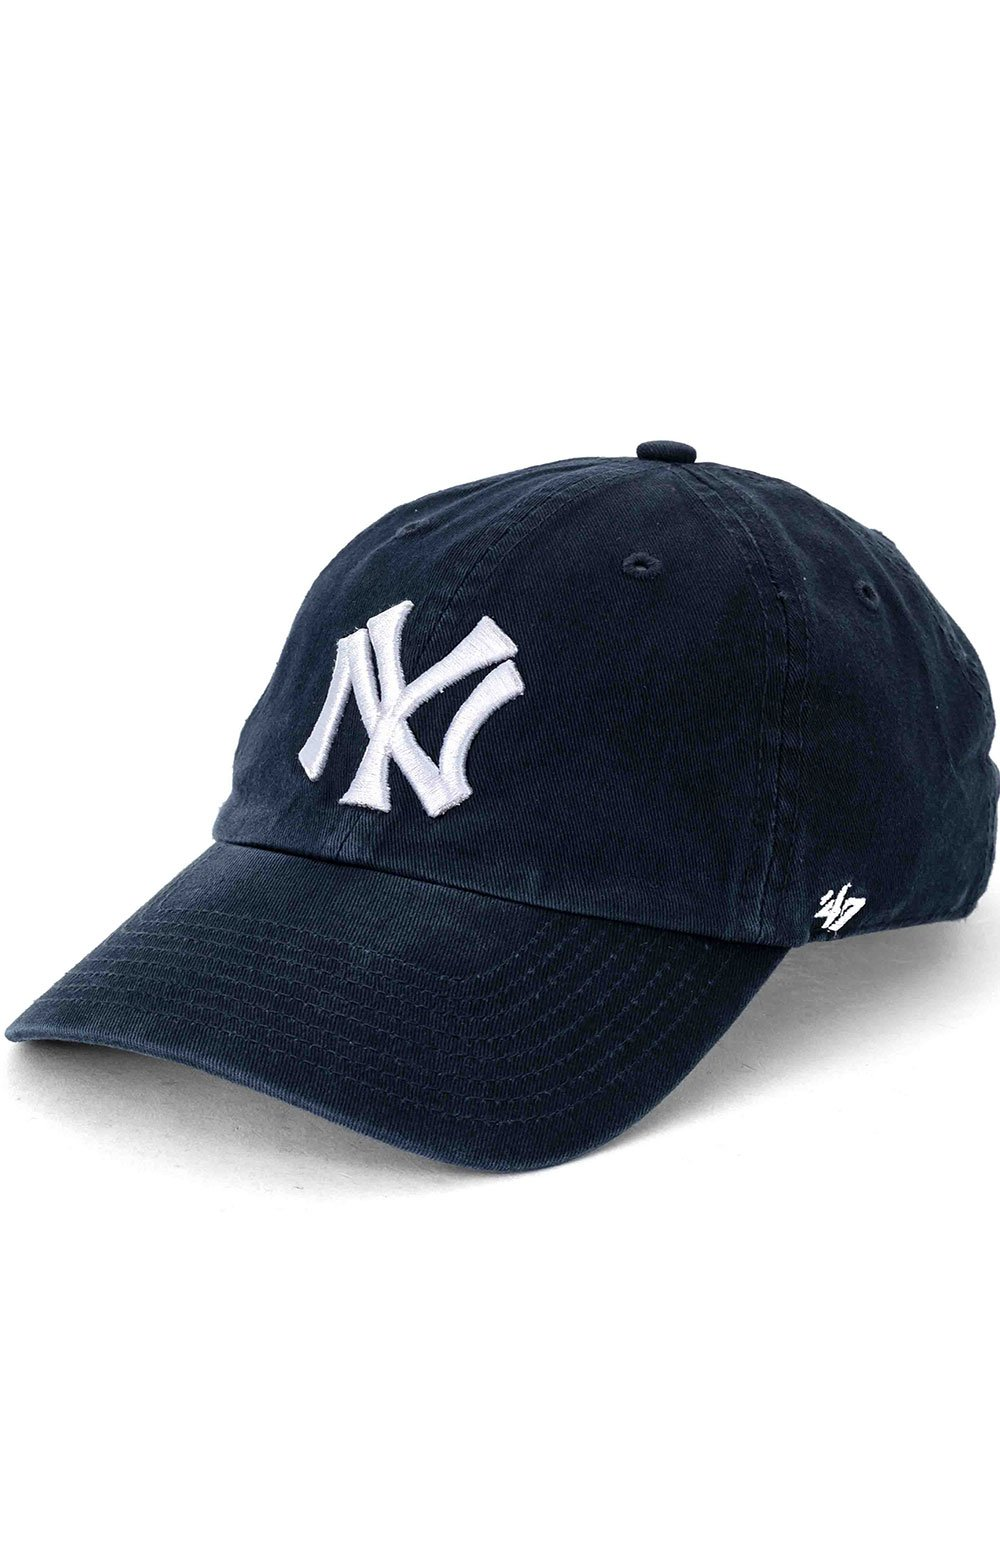 New York Yankees Cooperstown 47 Clean Up Cap - Navy